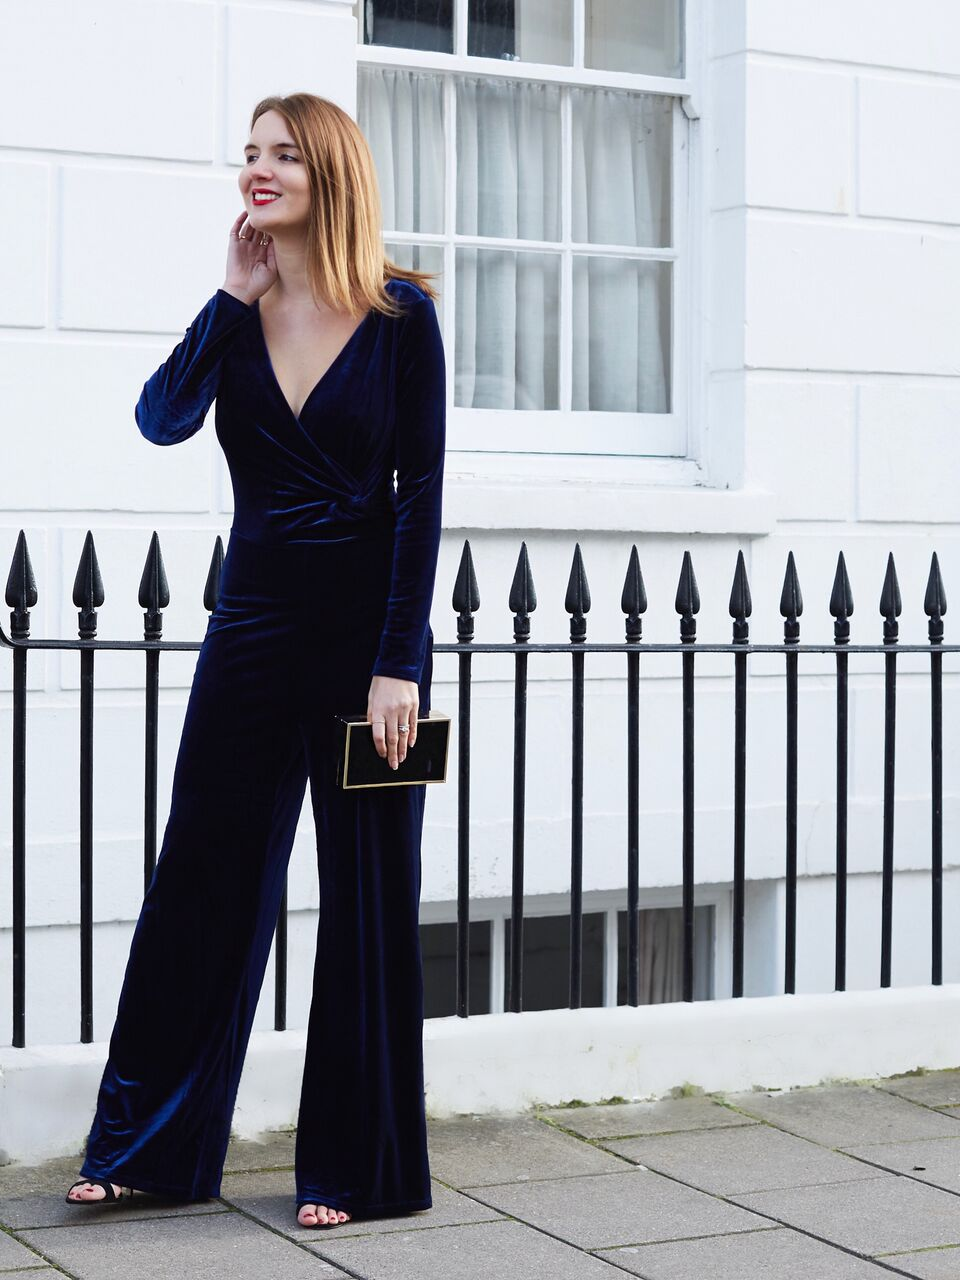 THE GROWN UP EDIT - Velvet Jumpsuit